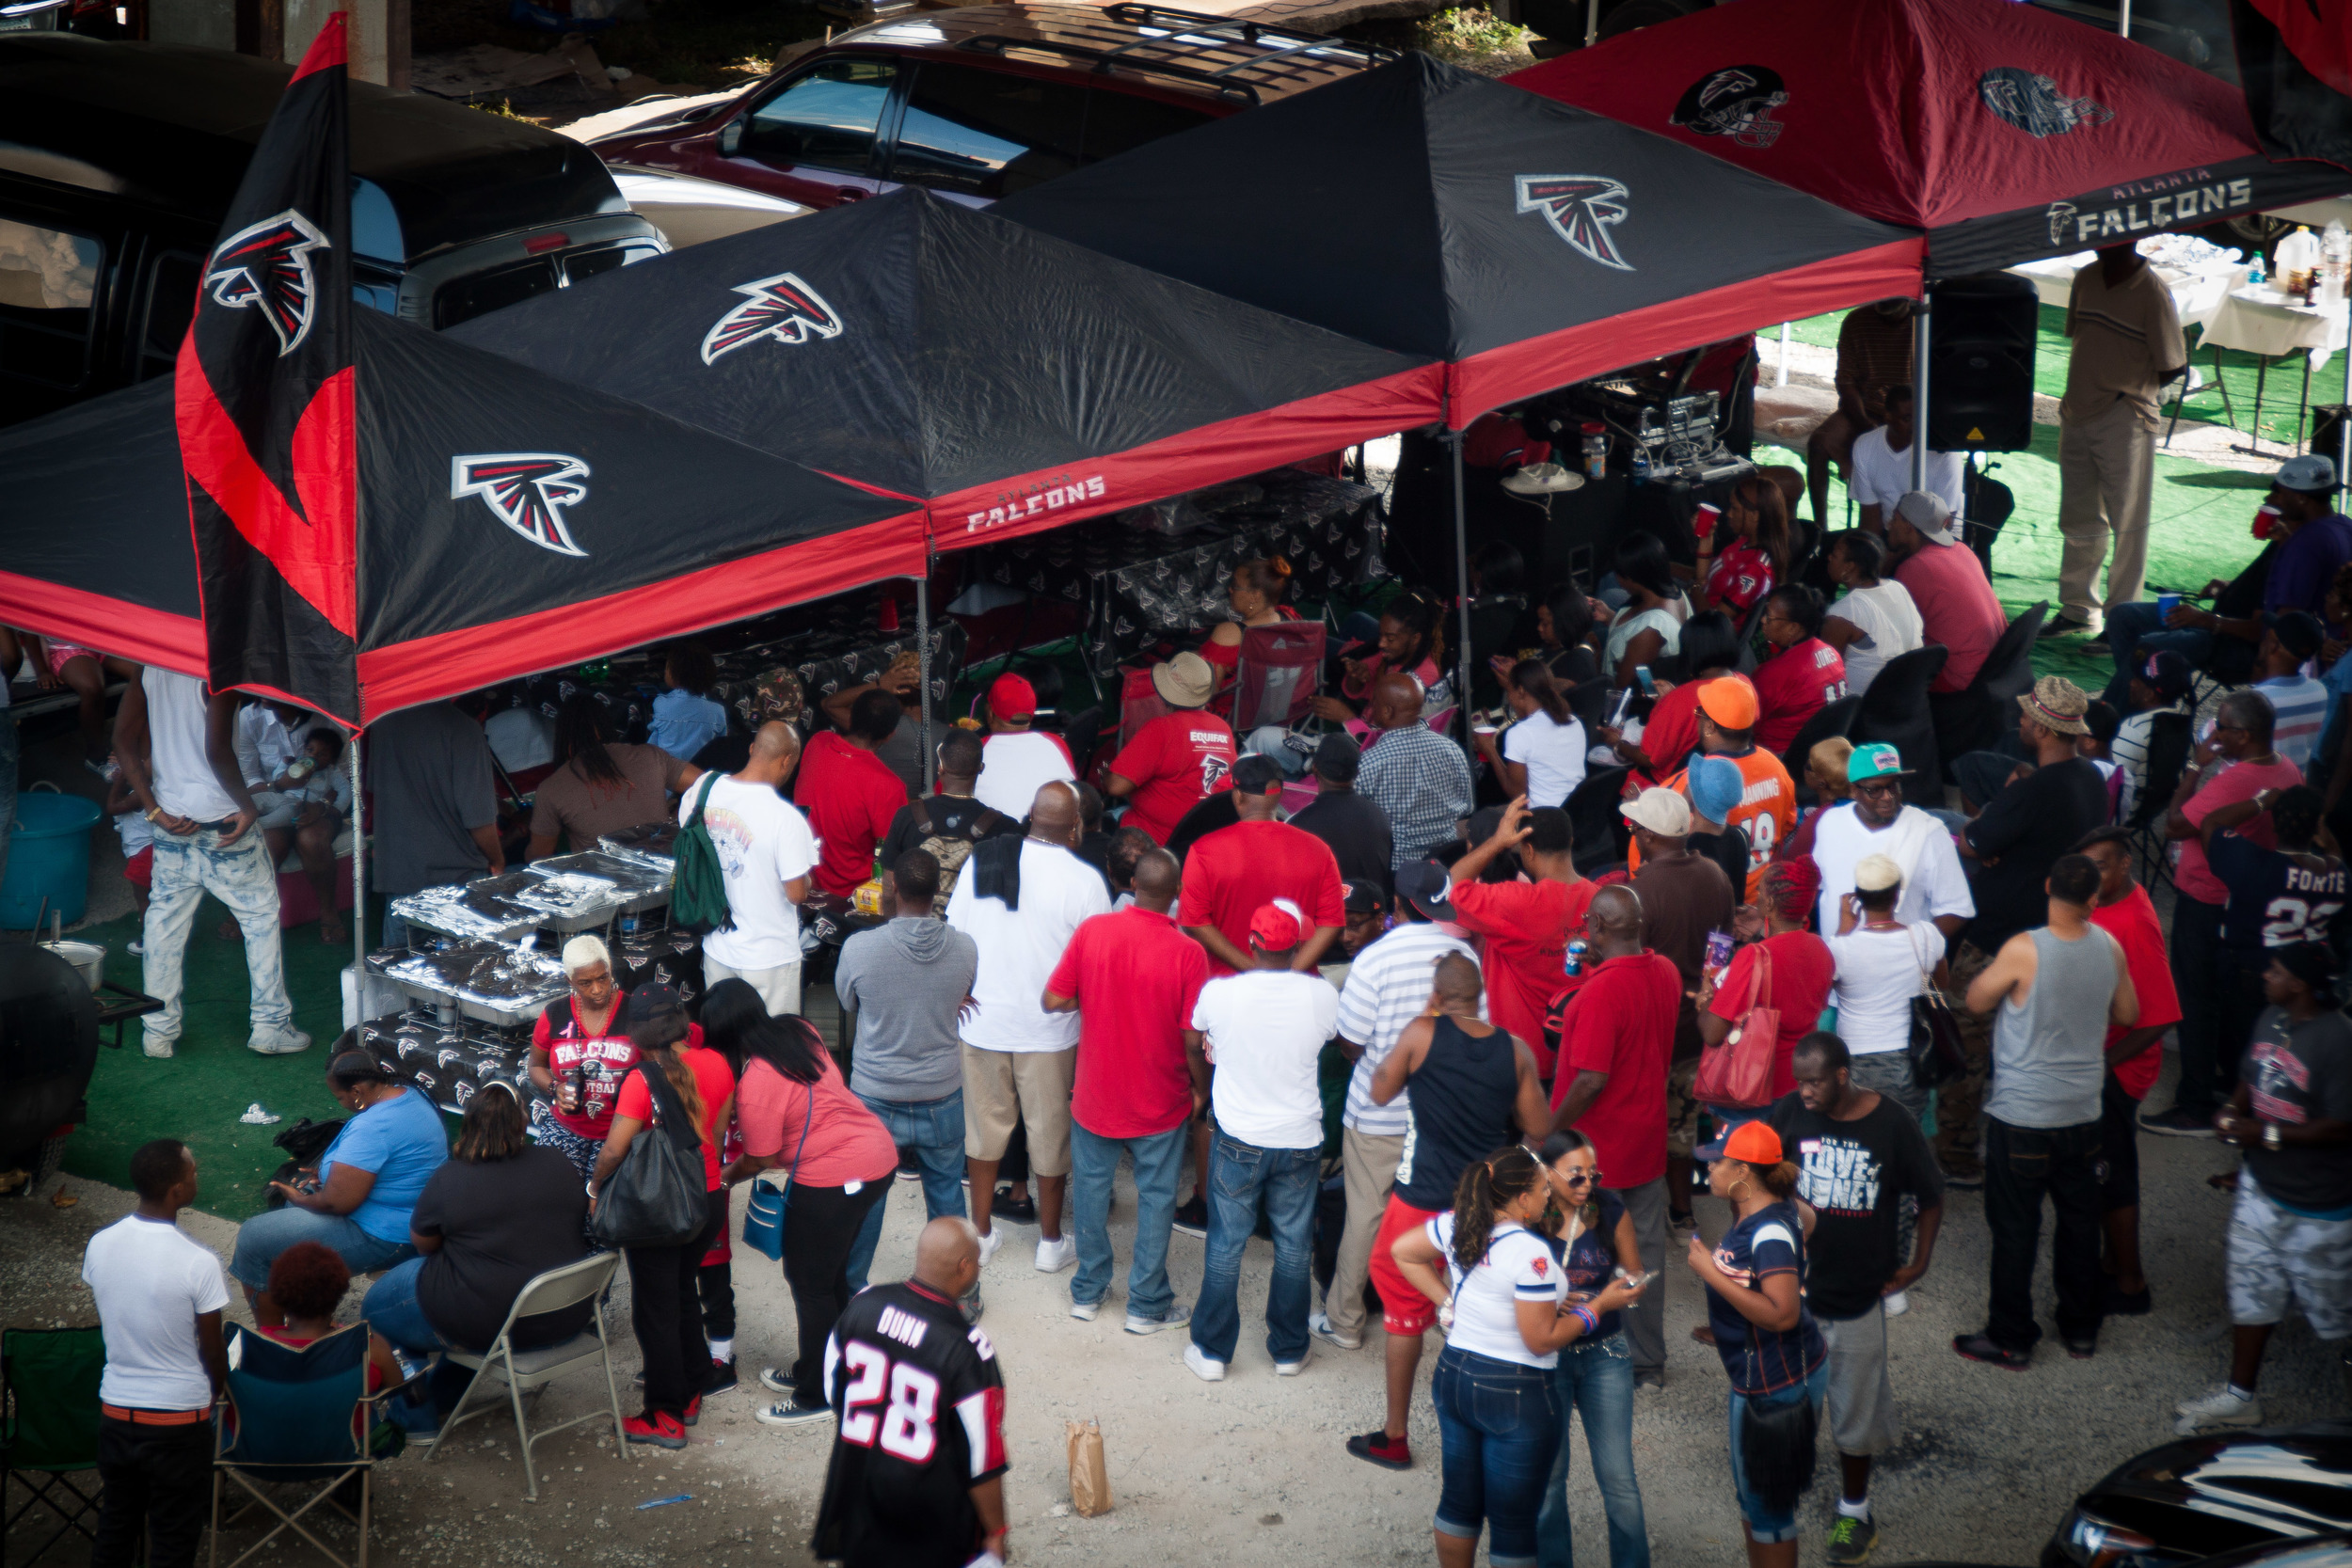 Falcons fans tailgating outside of the Georgia Dome